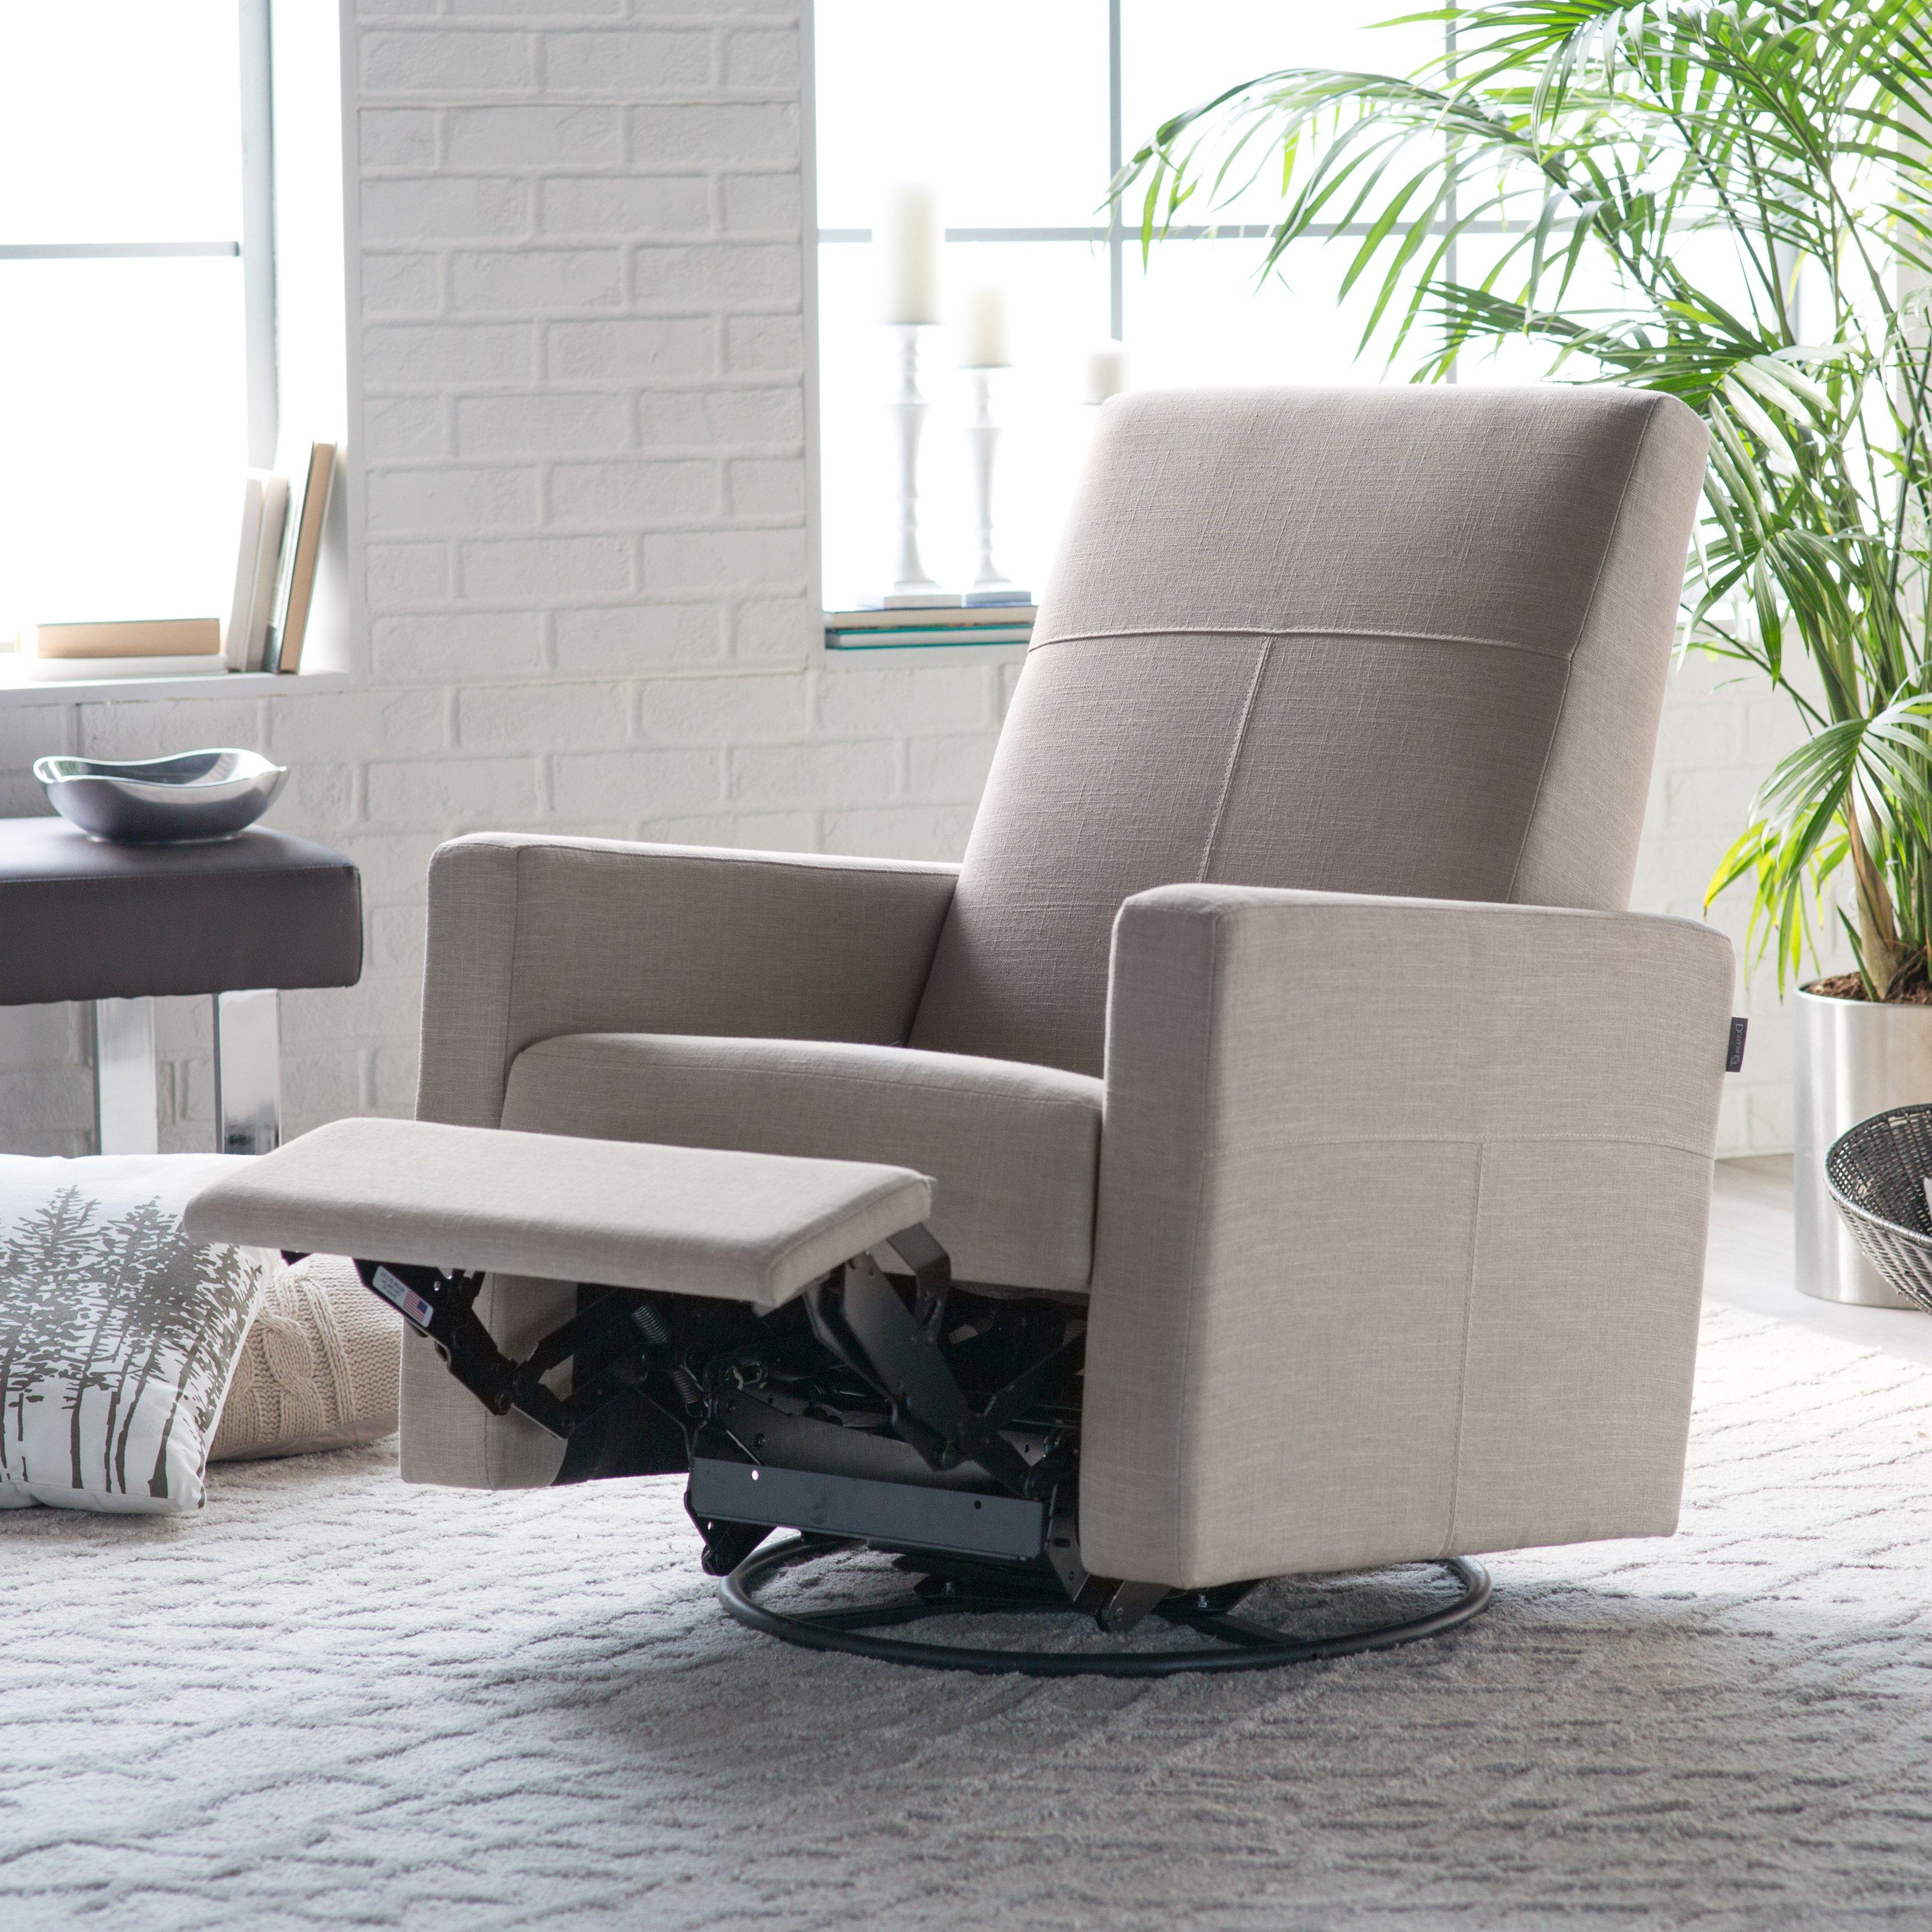 Favorite Furniture: Magnificent Walmart Glider Rocker For Fabulous Home Regarding Abbey Swivel Glider Recliners (View 13 of 20)